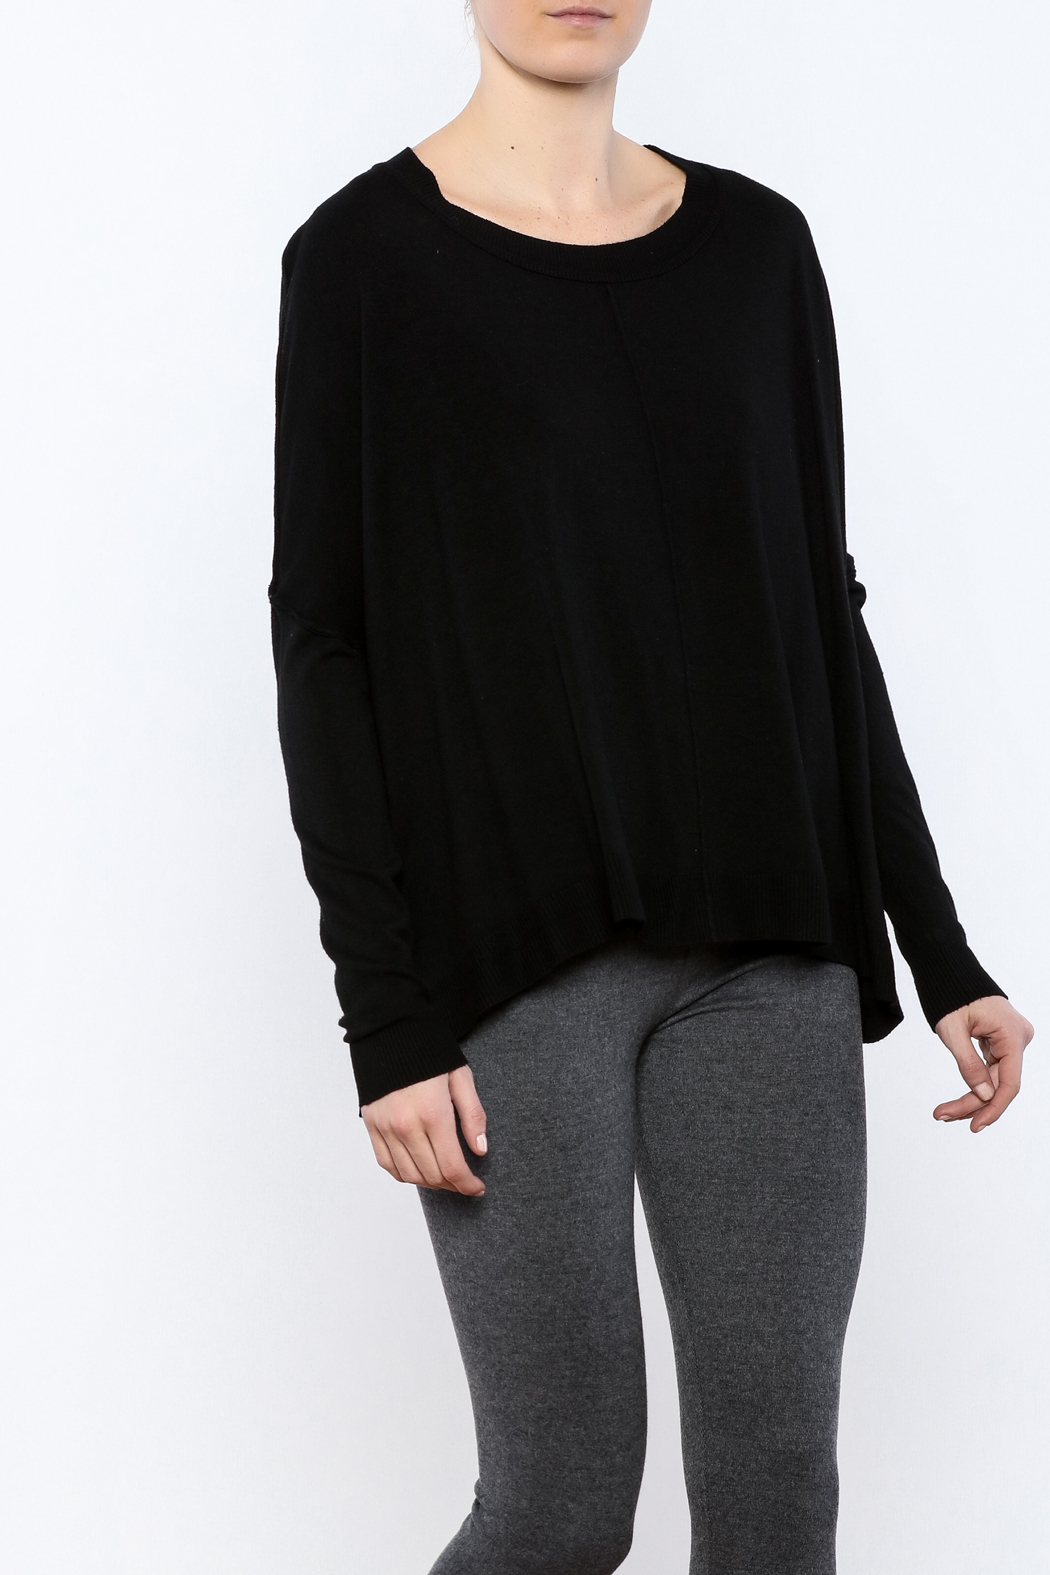 Olivaceous Black Soft Sweater from Miami by Allie & Chica — Shoptiques